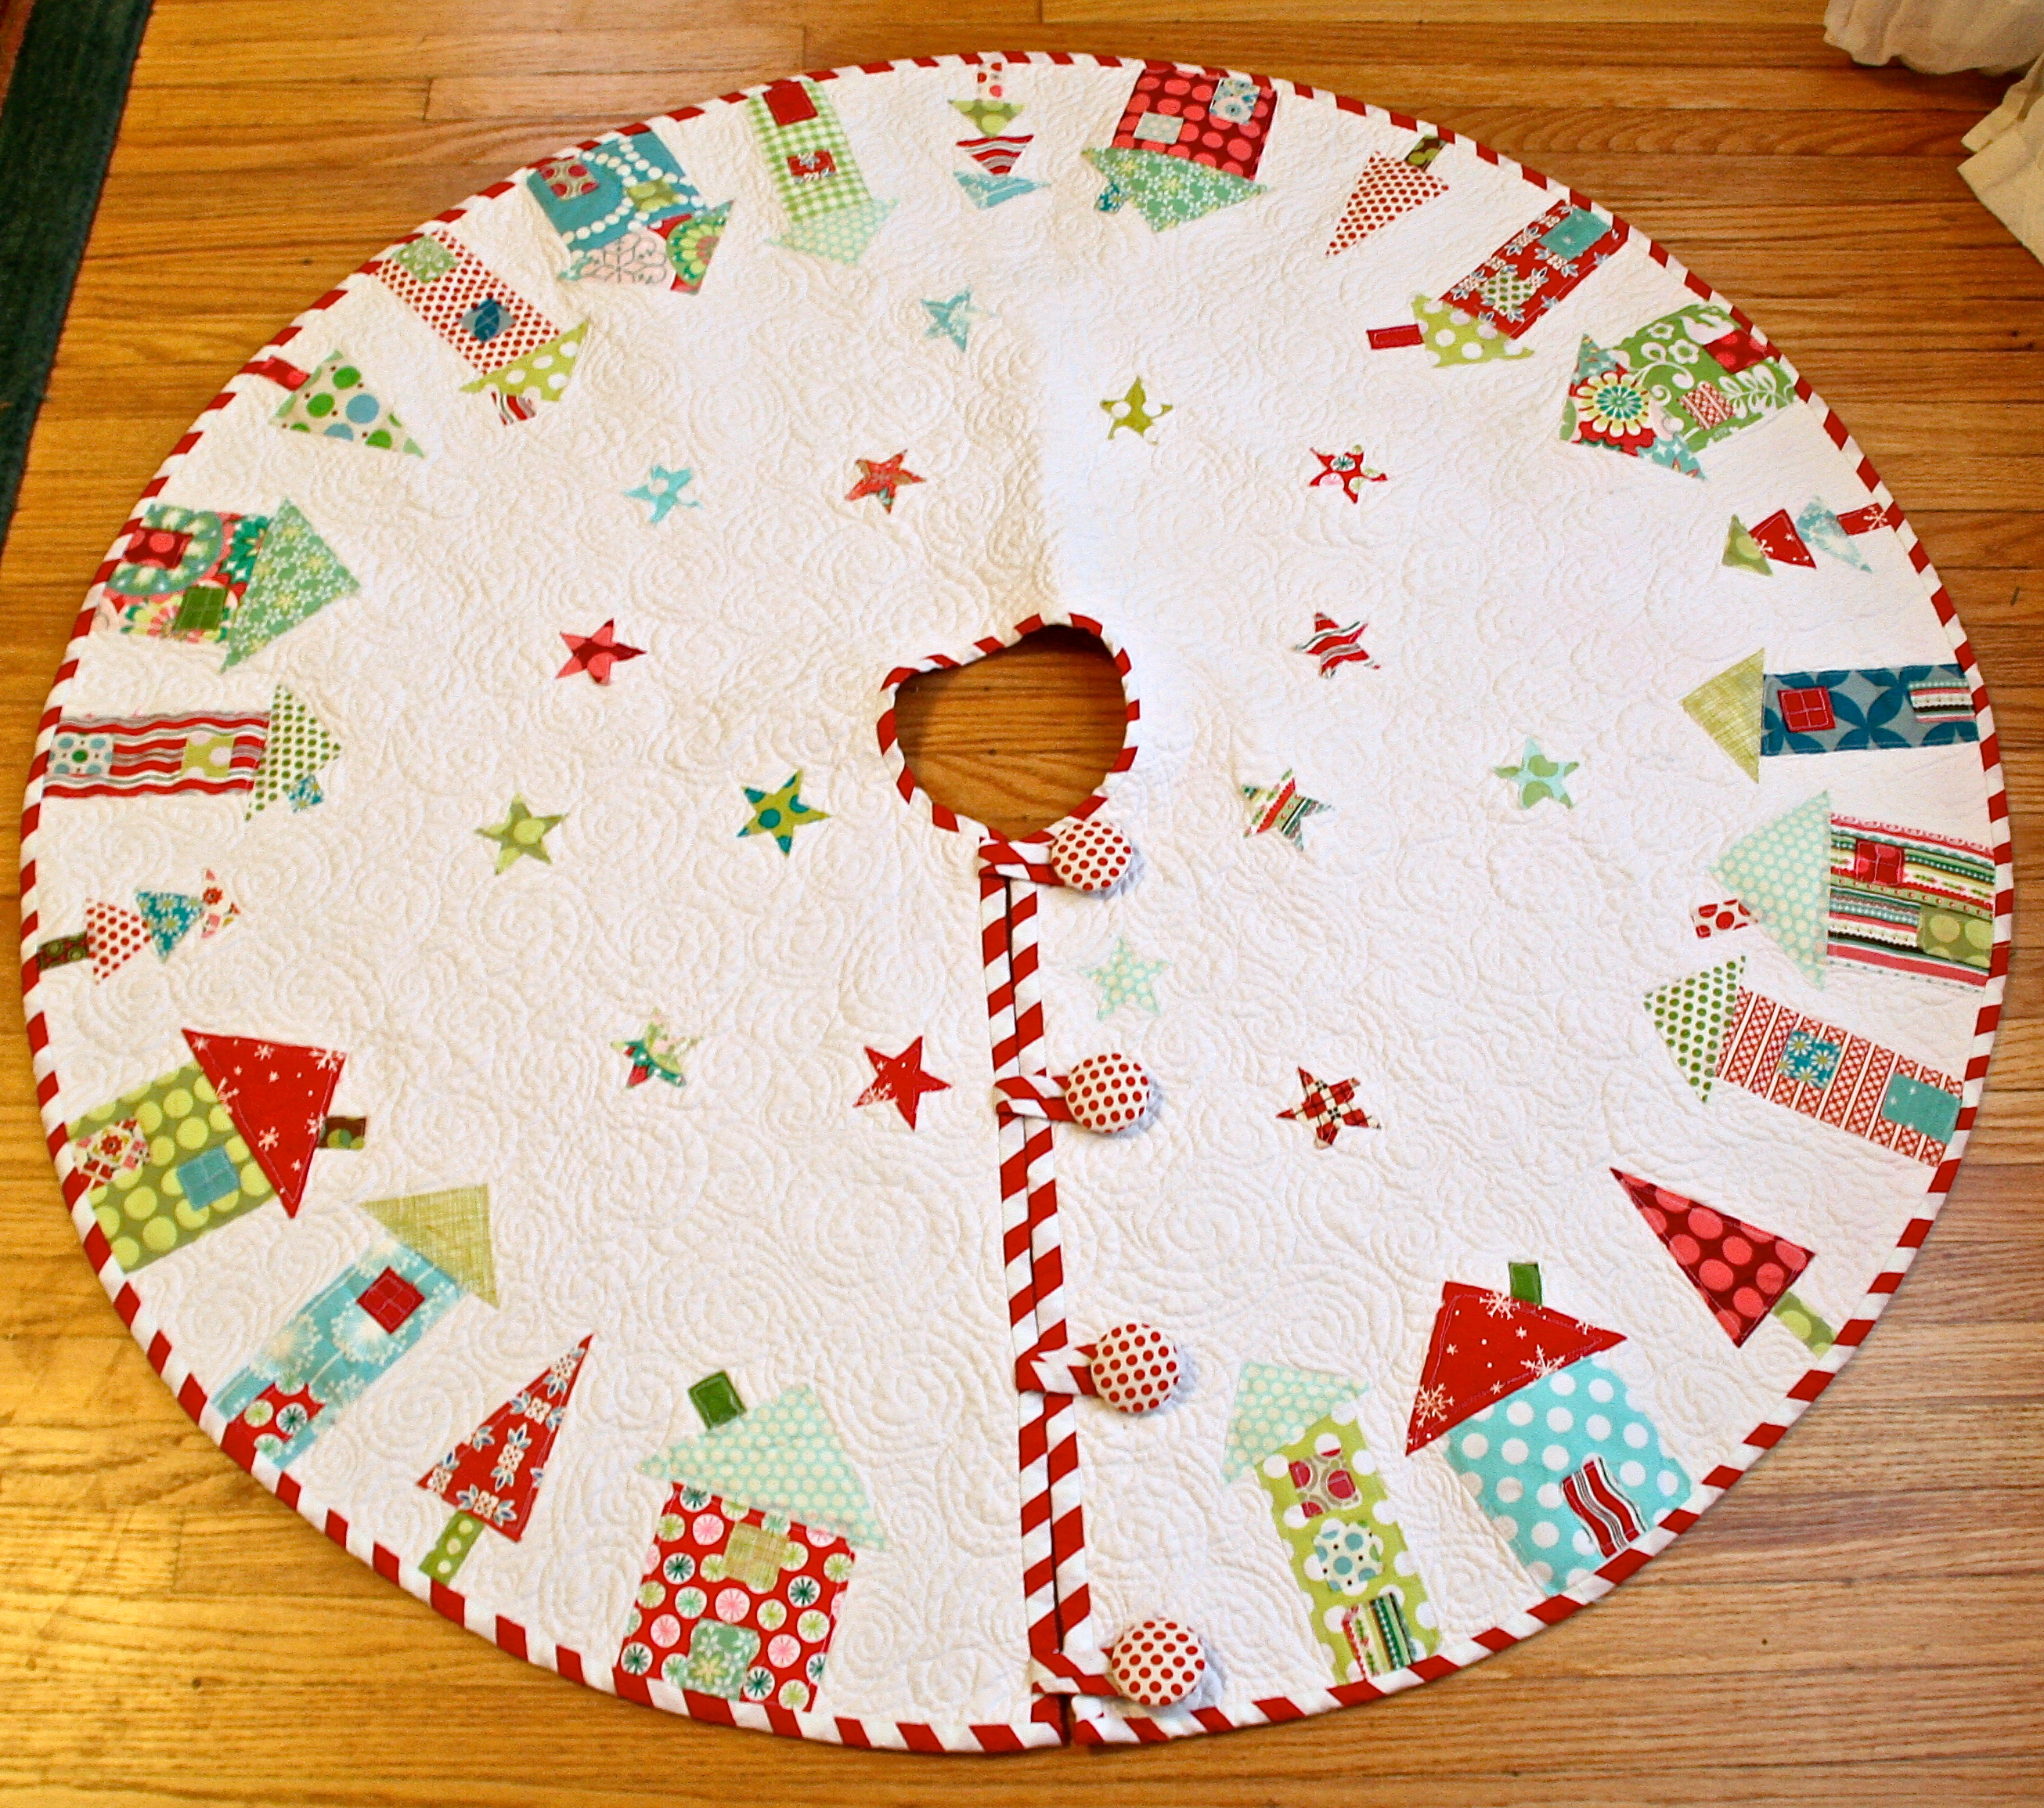 TGIFF- The One Where I Actually Finish the Tree Skirt.